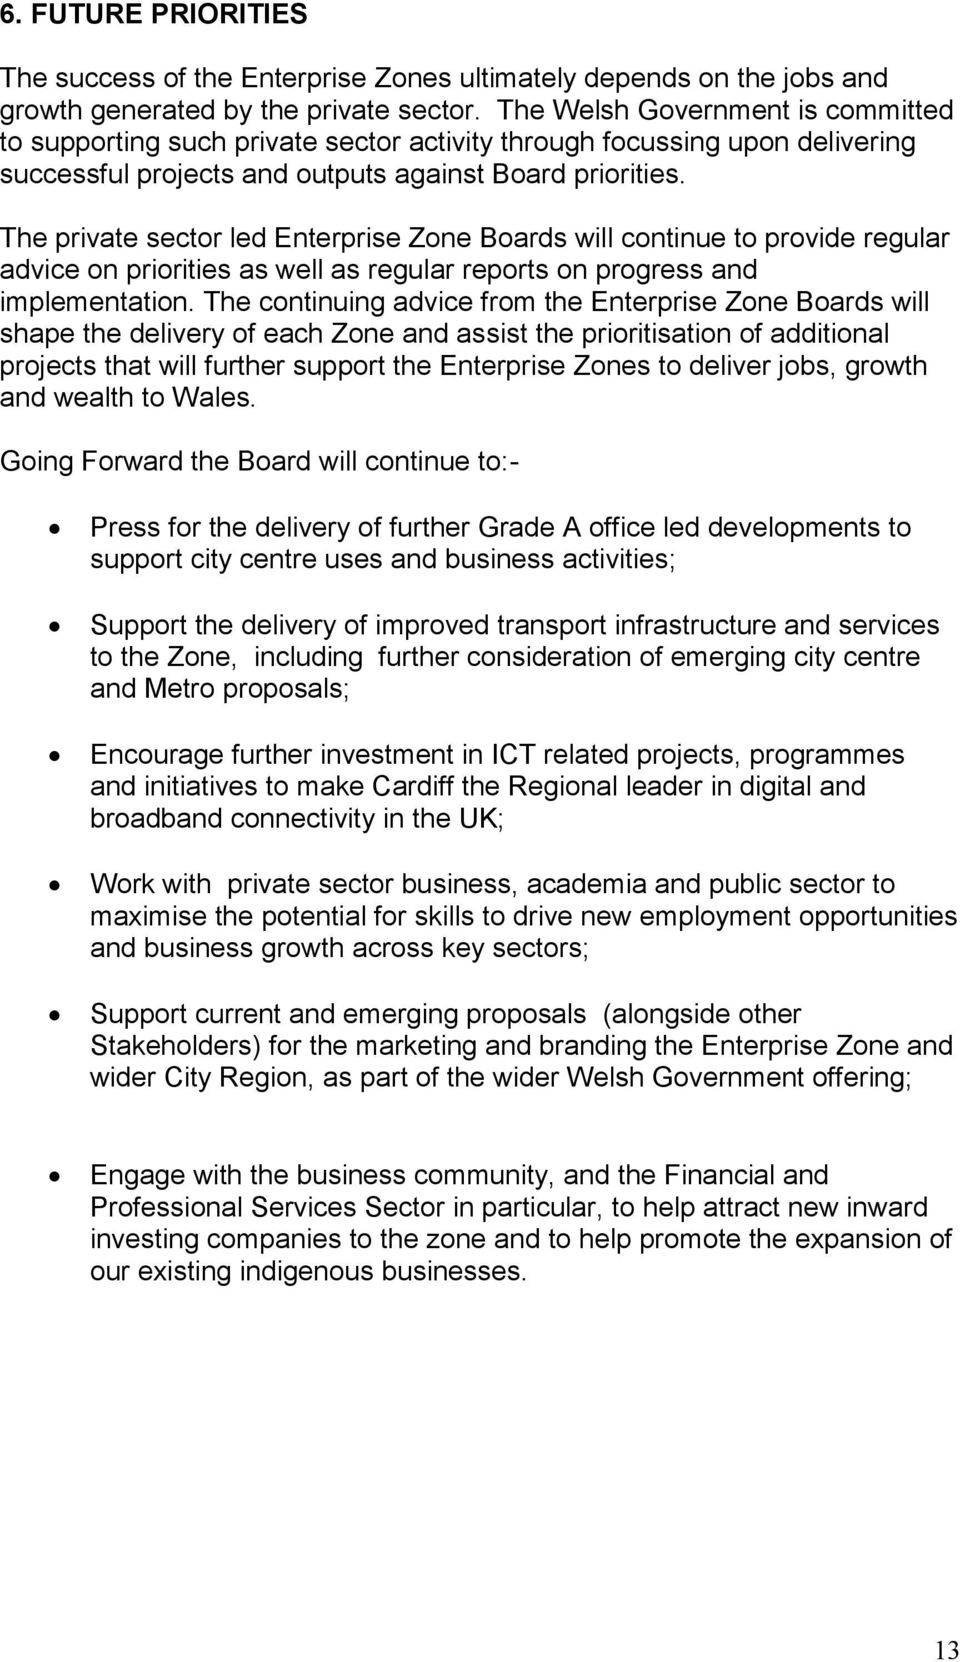 The private sector led Enterprise Zone Boards will continue to provide regular advice on priorities as well as regular reports on progress and implementation.